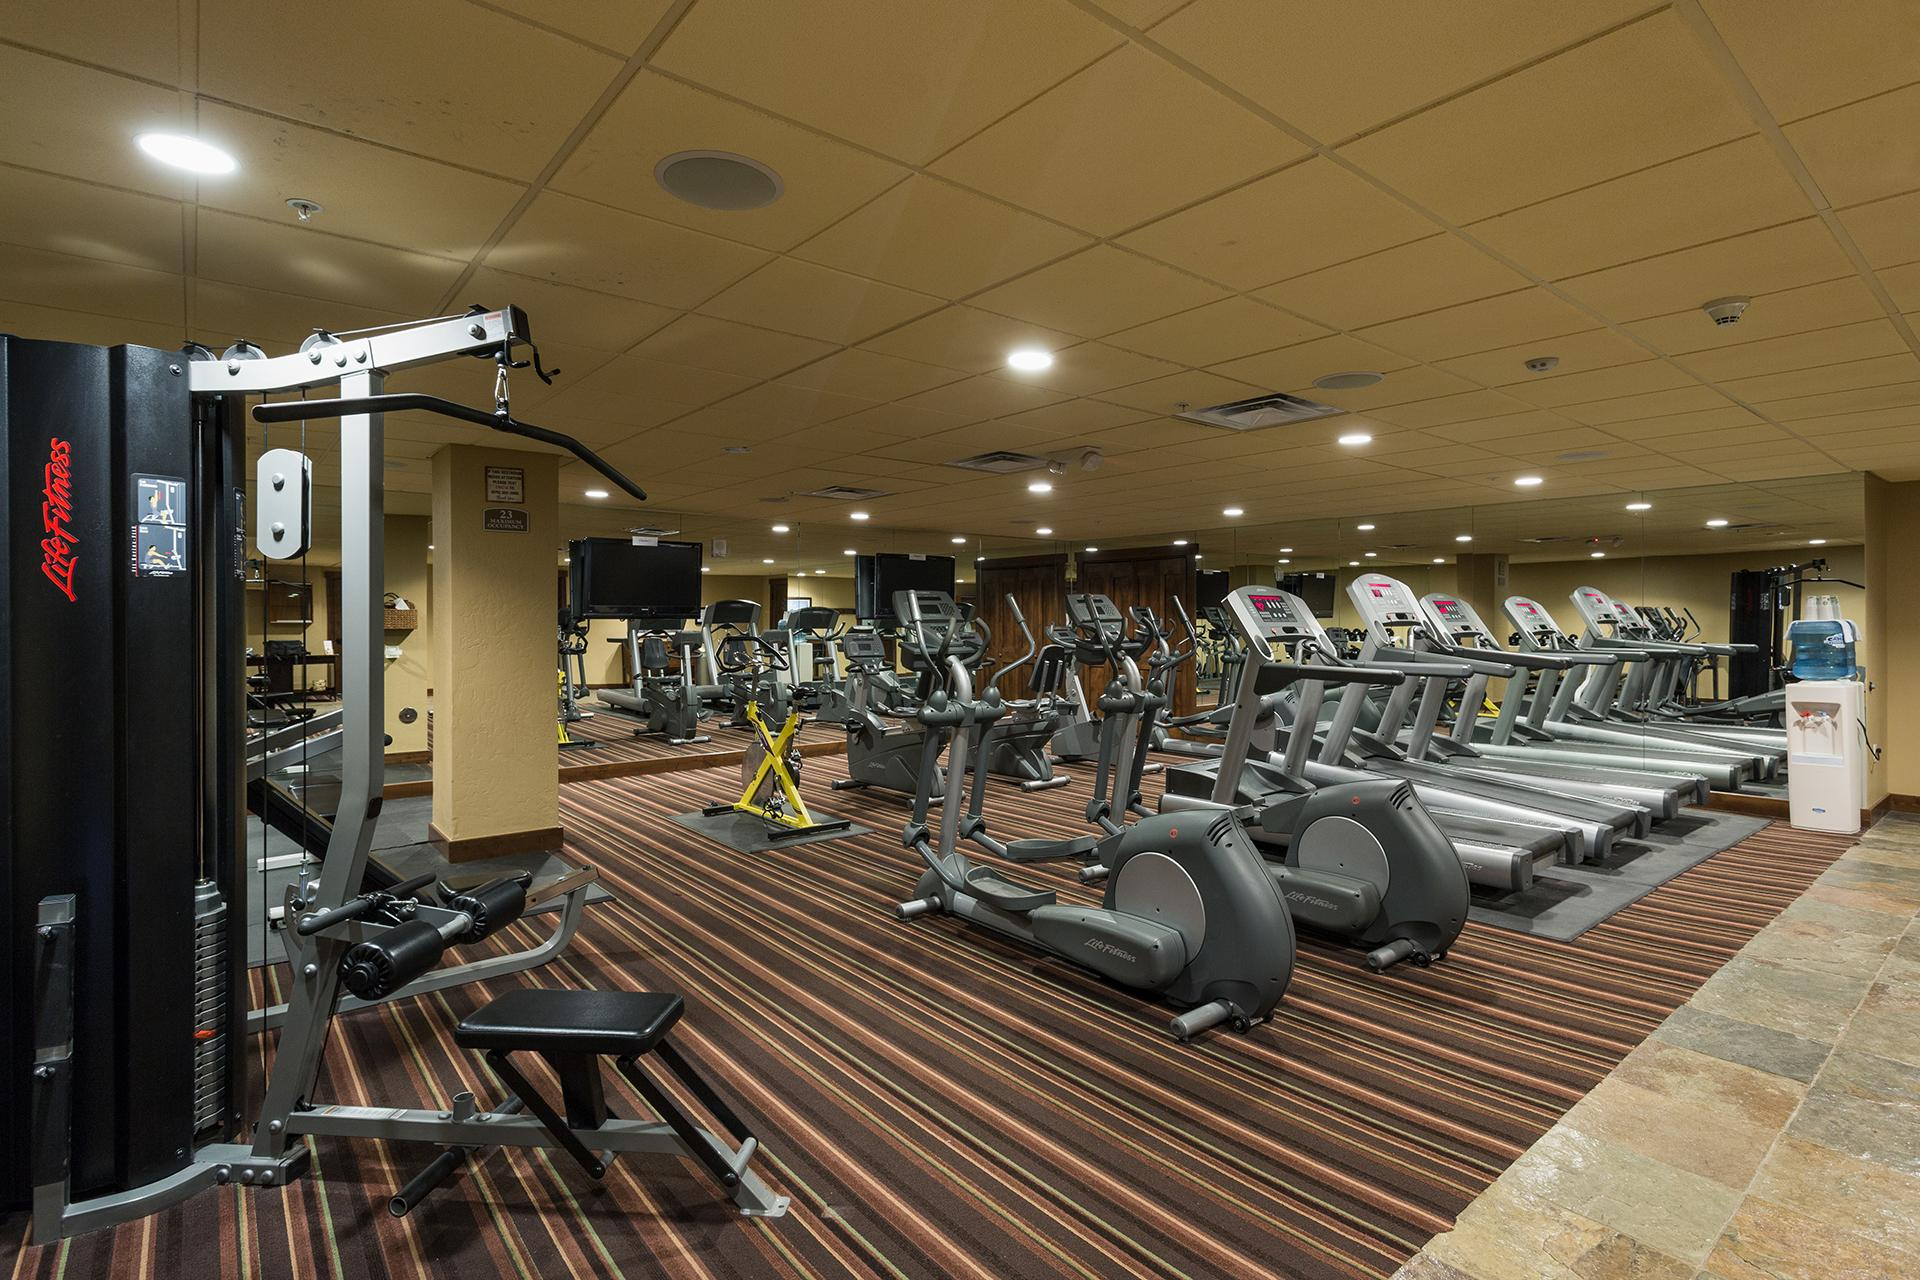 Purgatory Lodge gym facility. This is an optional amenity that you can access the Purg Lodge pool, hot tub, and gym facilities by paying an additional 4% fee.